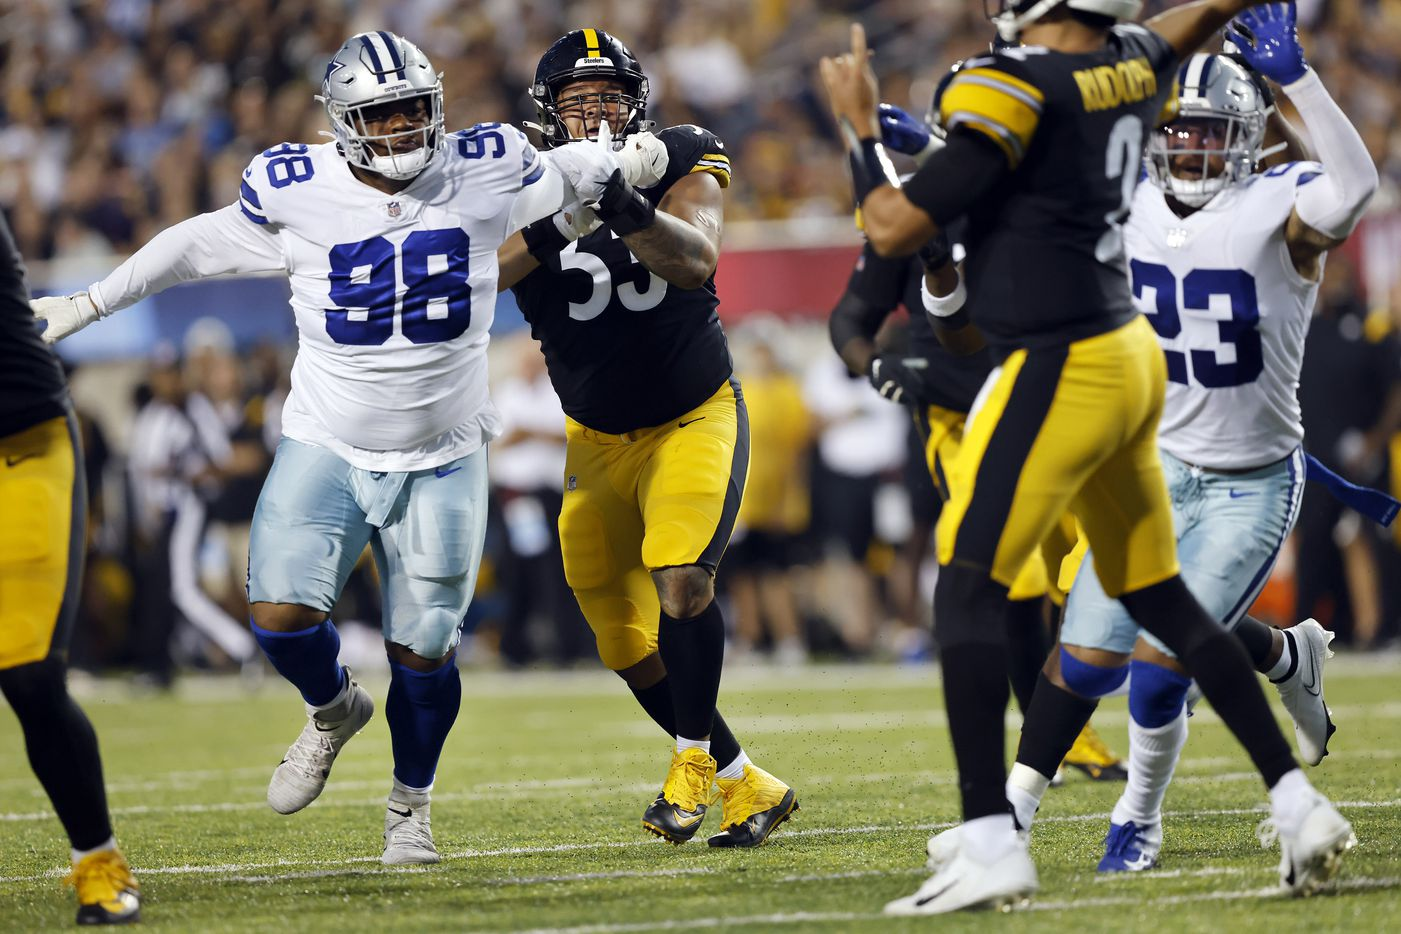 Dallas Cowboys defensive tackle Quinton Bohanna (98) fights off Pittsburgh Steelers center Kendrick Green (53) as he tries to get to quarterback Mason Rudolph (2) during the first quarter of their preseason game at Tom Benson Hall of Fame Stadium in Canton, Ohio, Thursday, August 5, 2021. (Tom Fox/The Dallas Morning News)